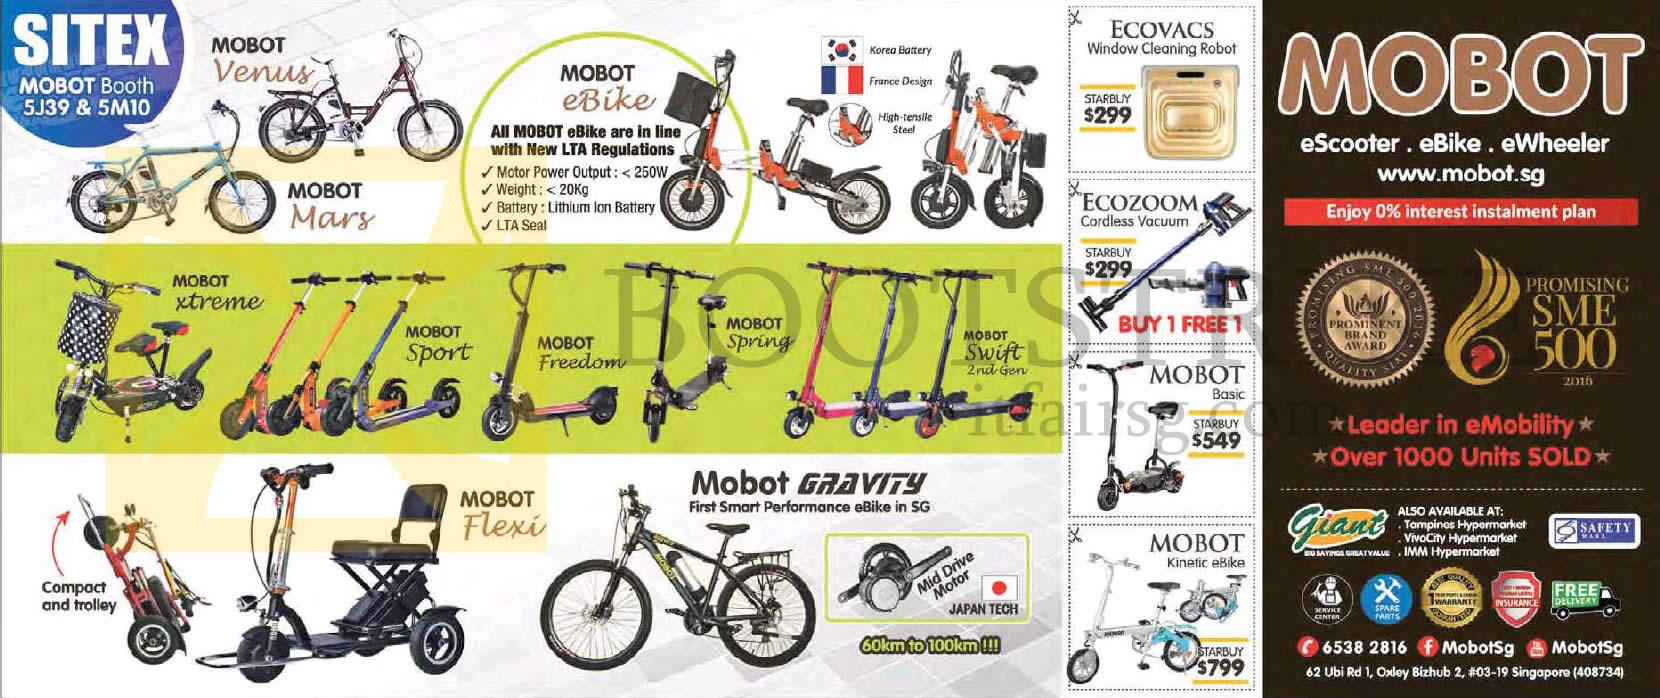 SITEX 2015 price list image brochure of Mobot EBikes, Venus, EBike, Xtreme, Sport, Freedom, Spring, Swift, Flexi, Gravity